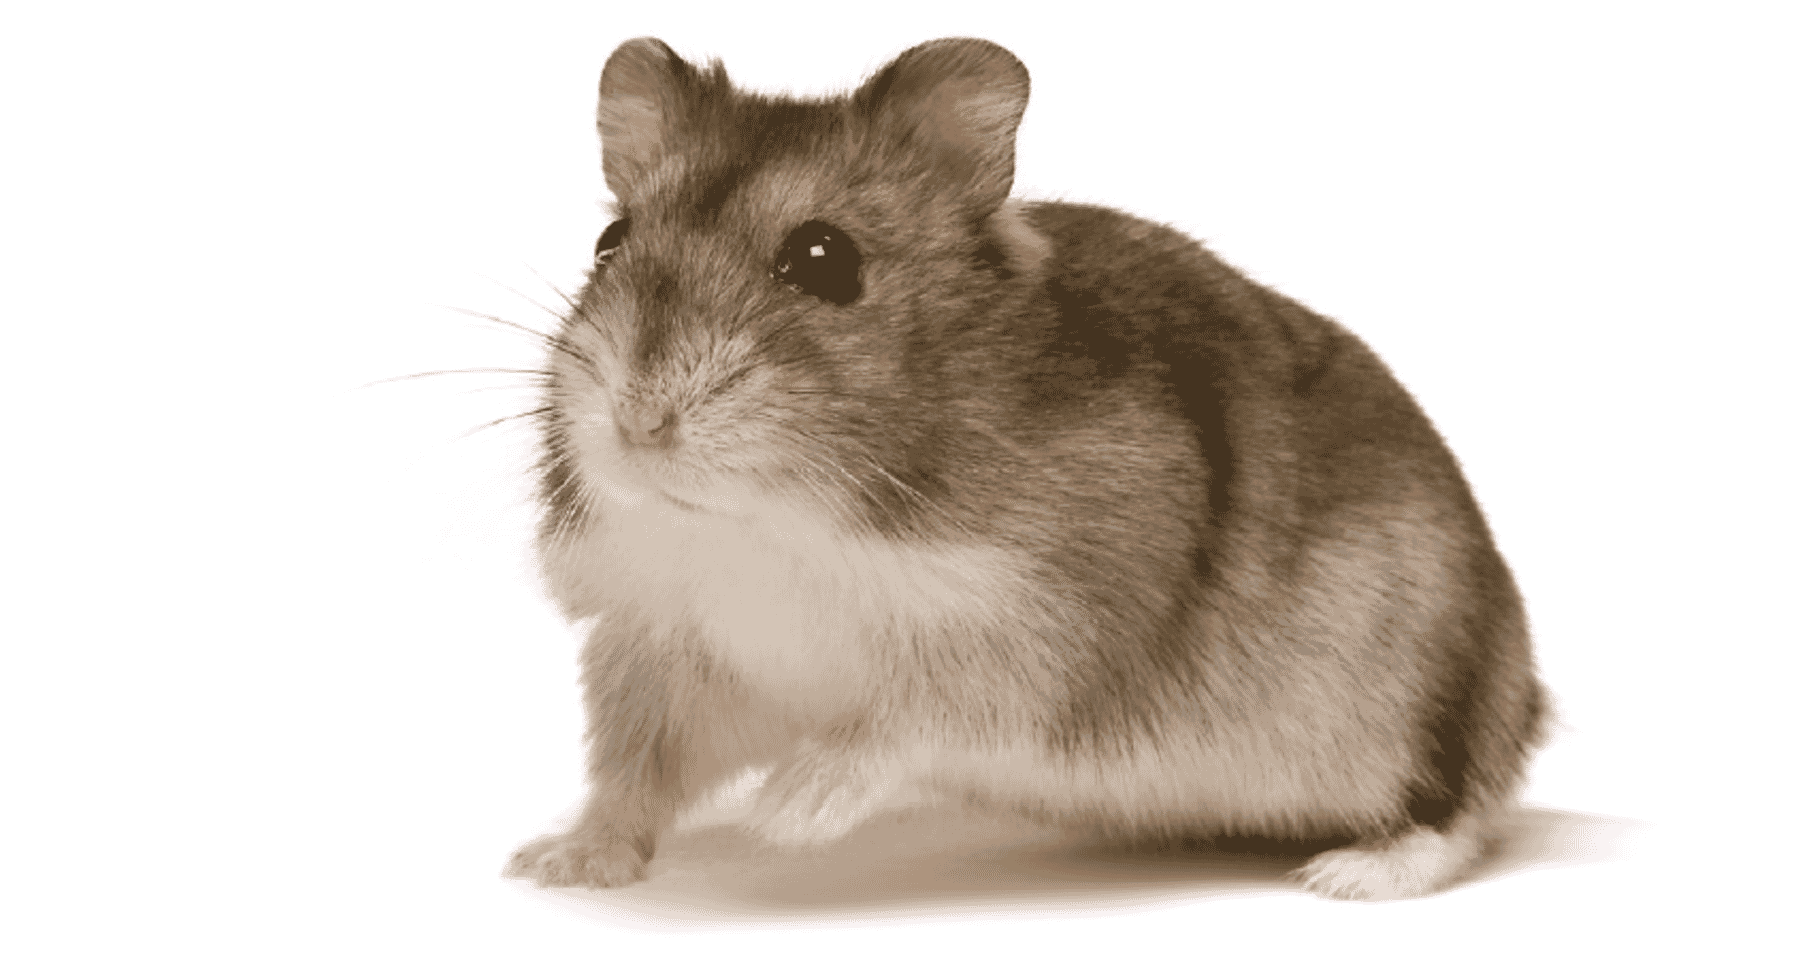 At home with your Hamster